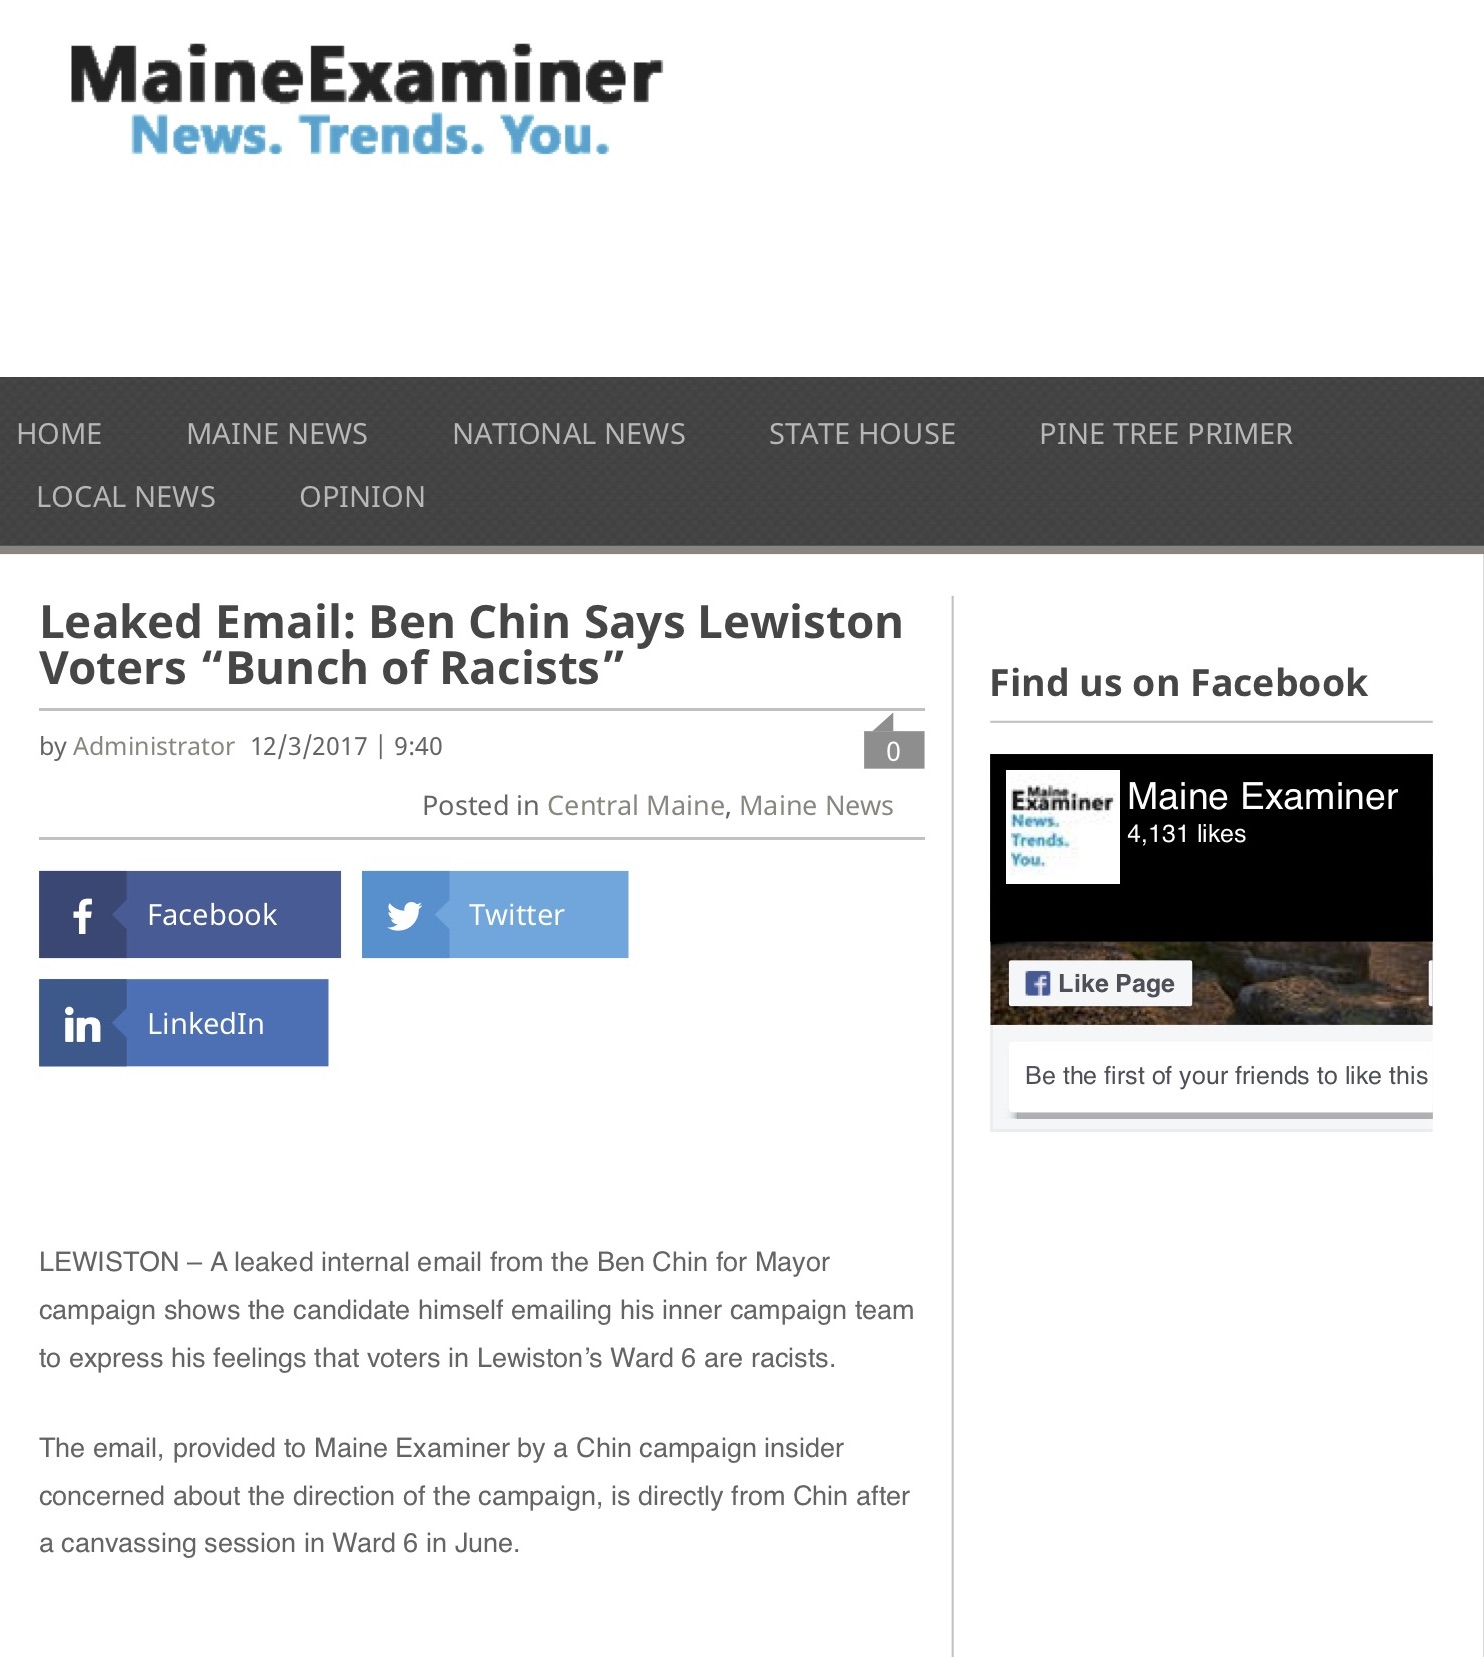 """Leaked Email: Ben Chin Says Lewiston Voters """"Bunch of Racists"""""""